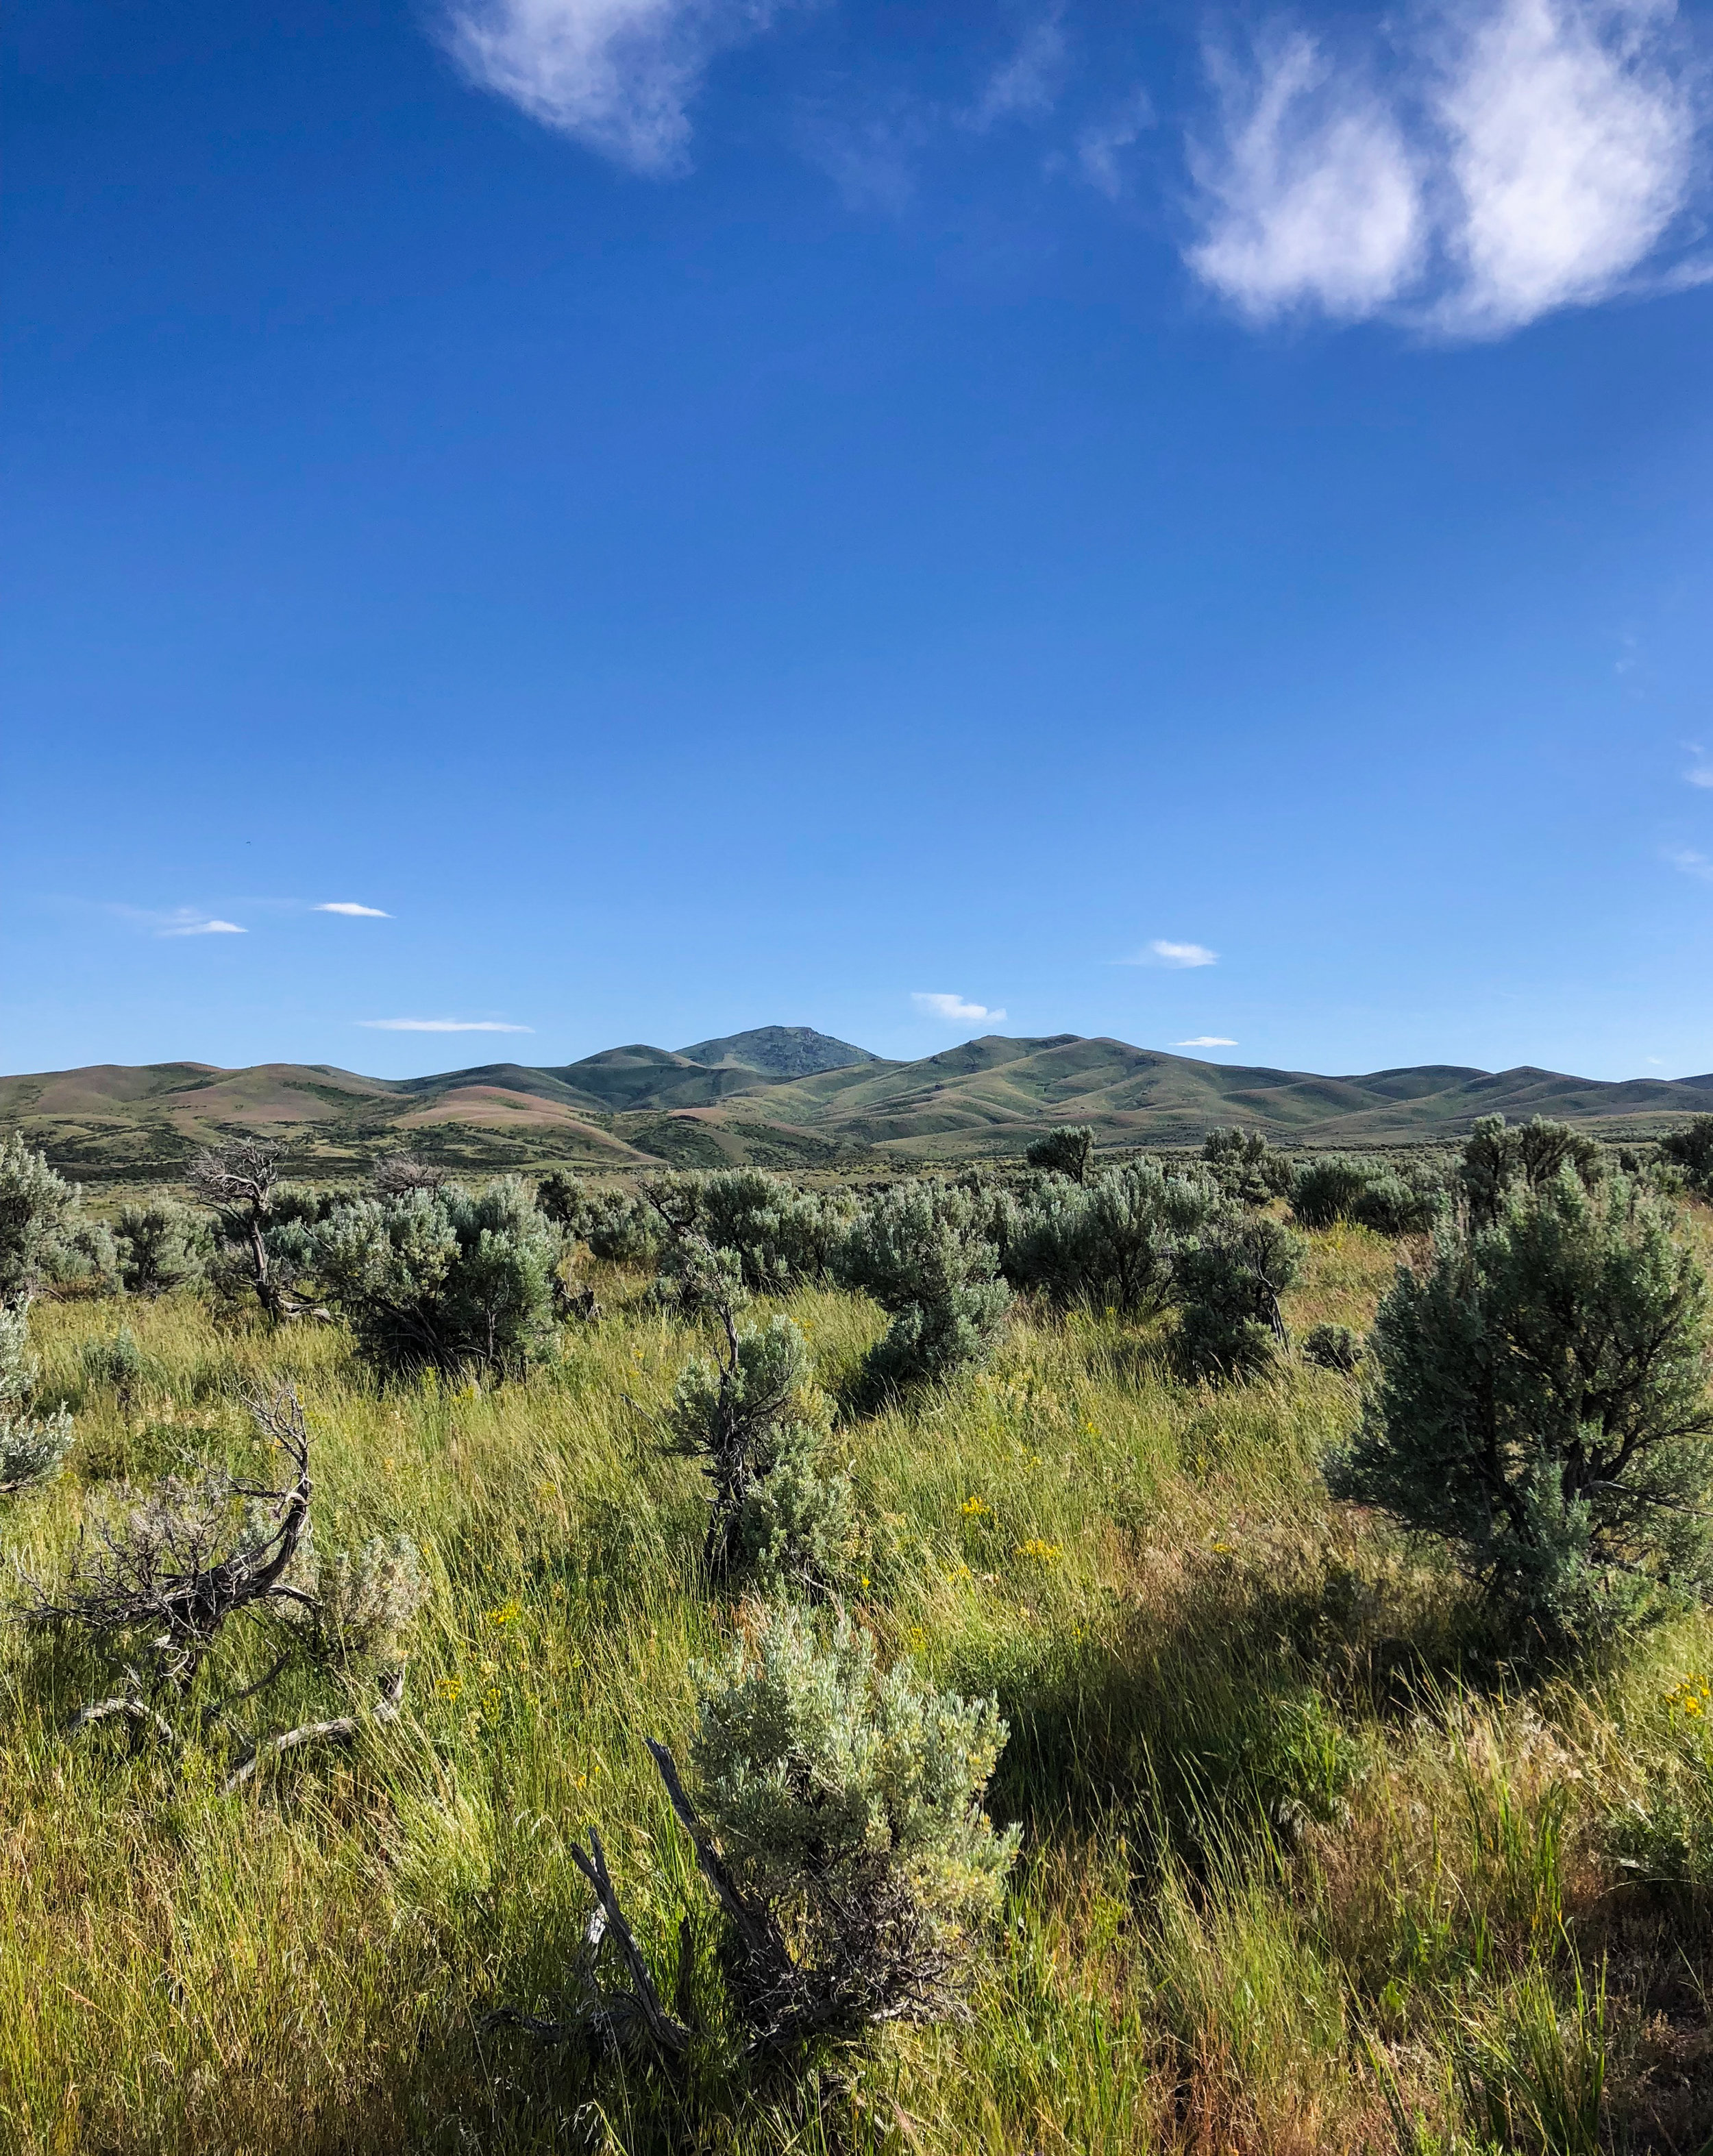 Healthy sagebrush stands with perennial bunch grasses make ideal sage grouse nesting habitat, as long as the cheatgrass is kept in check.